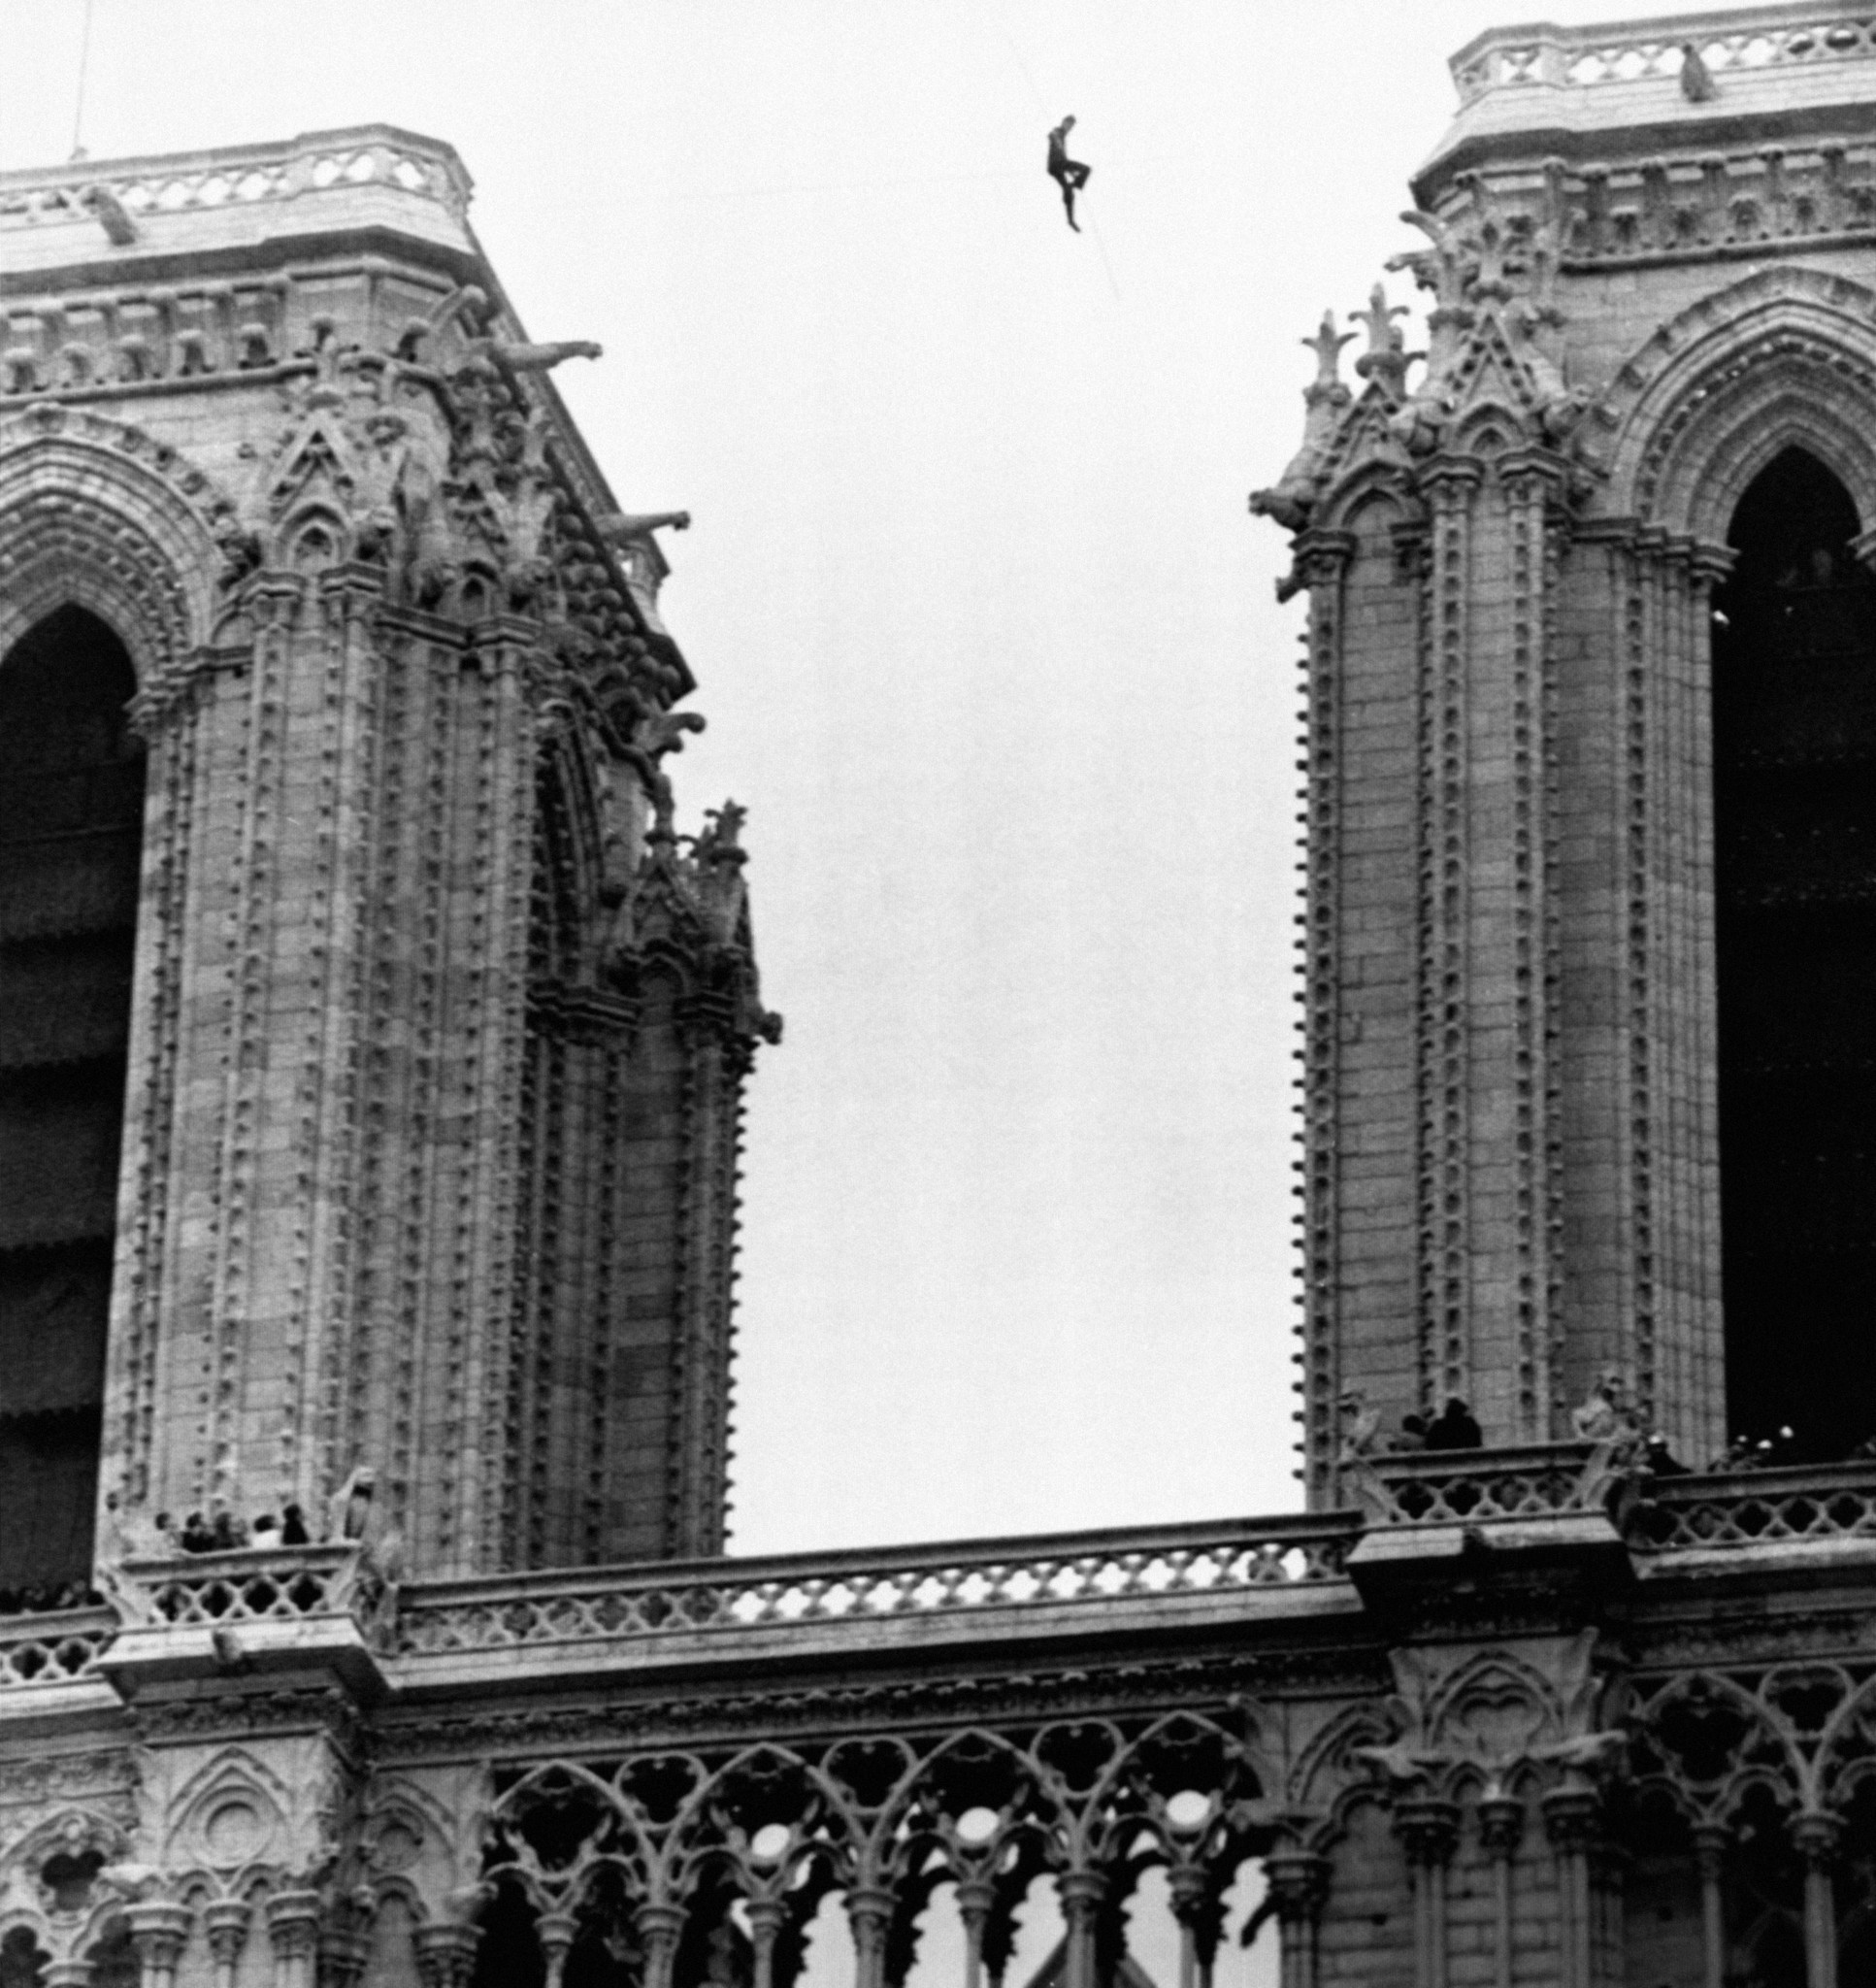 Philippe Petit is he alive